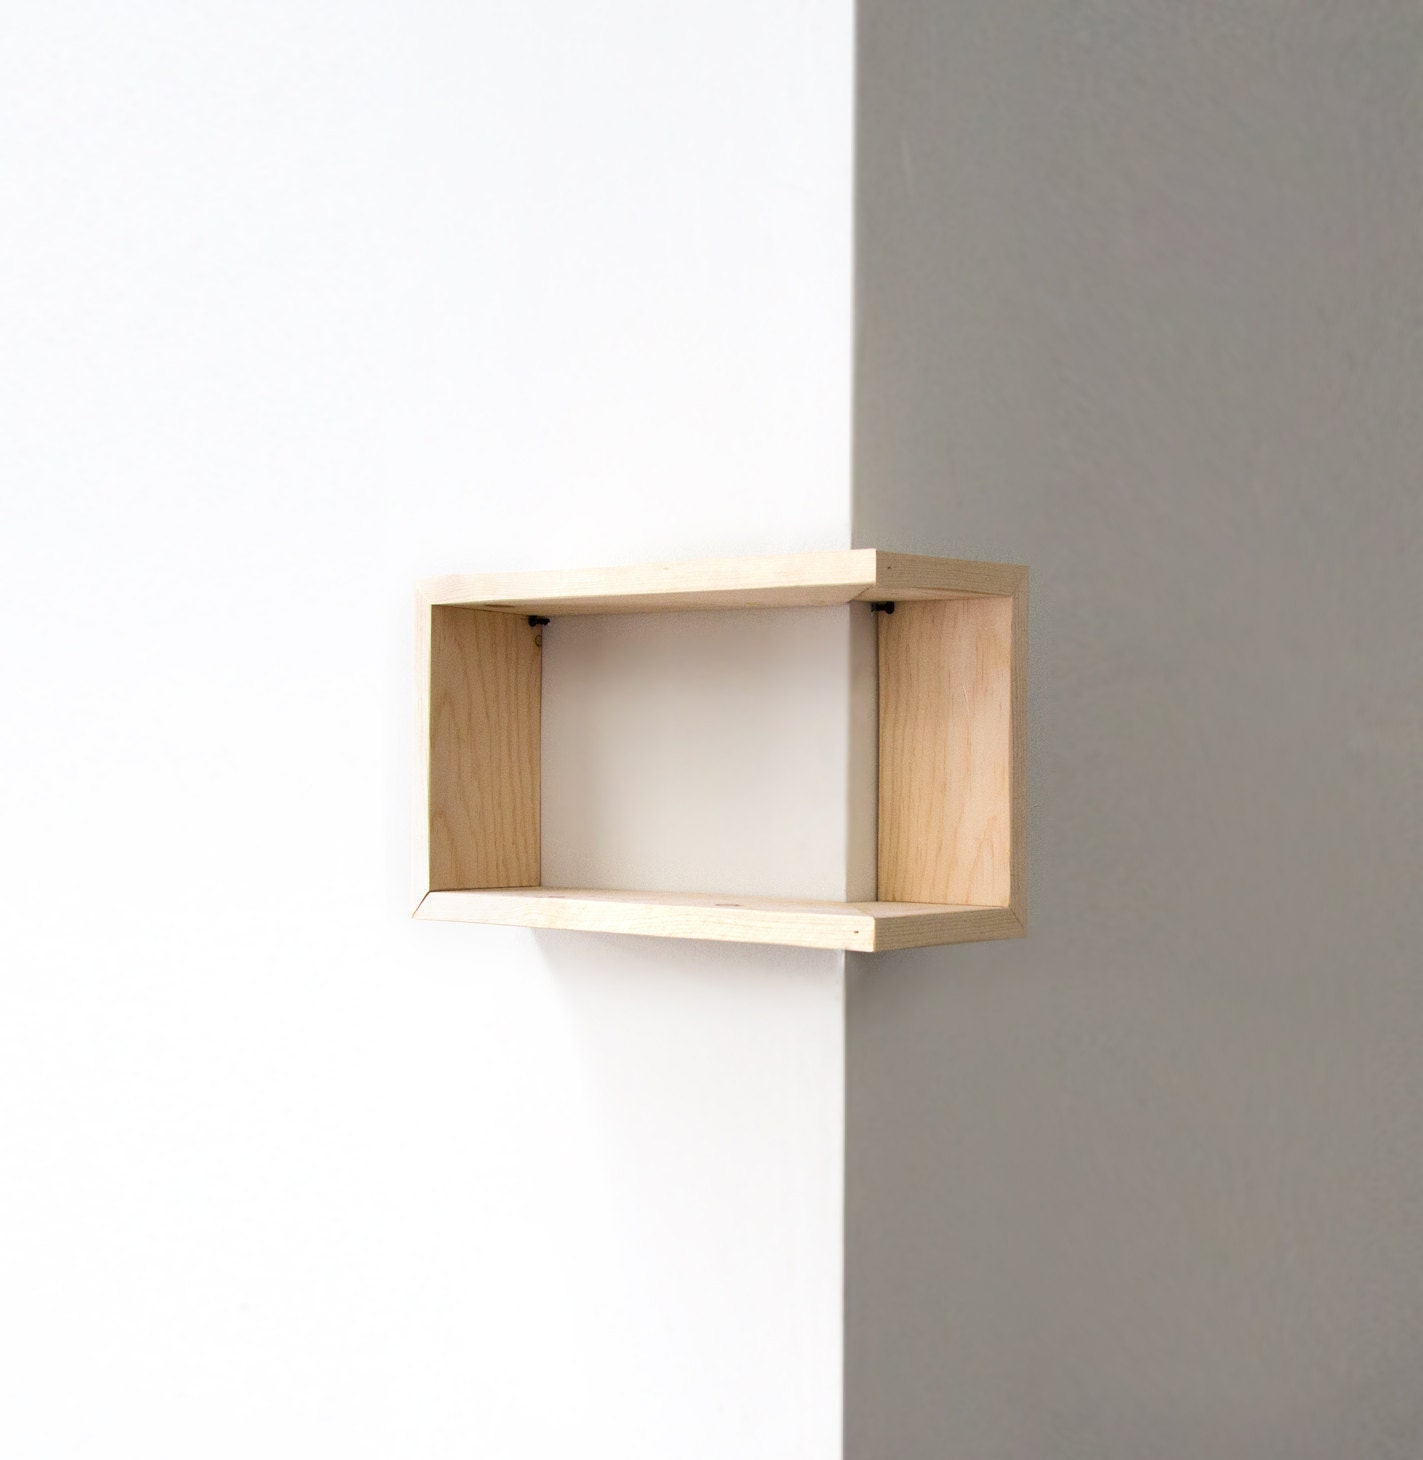 Wooden shelf wooden shelves wood shelf geometric shelves zoom amipublicfo Gallery